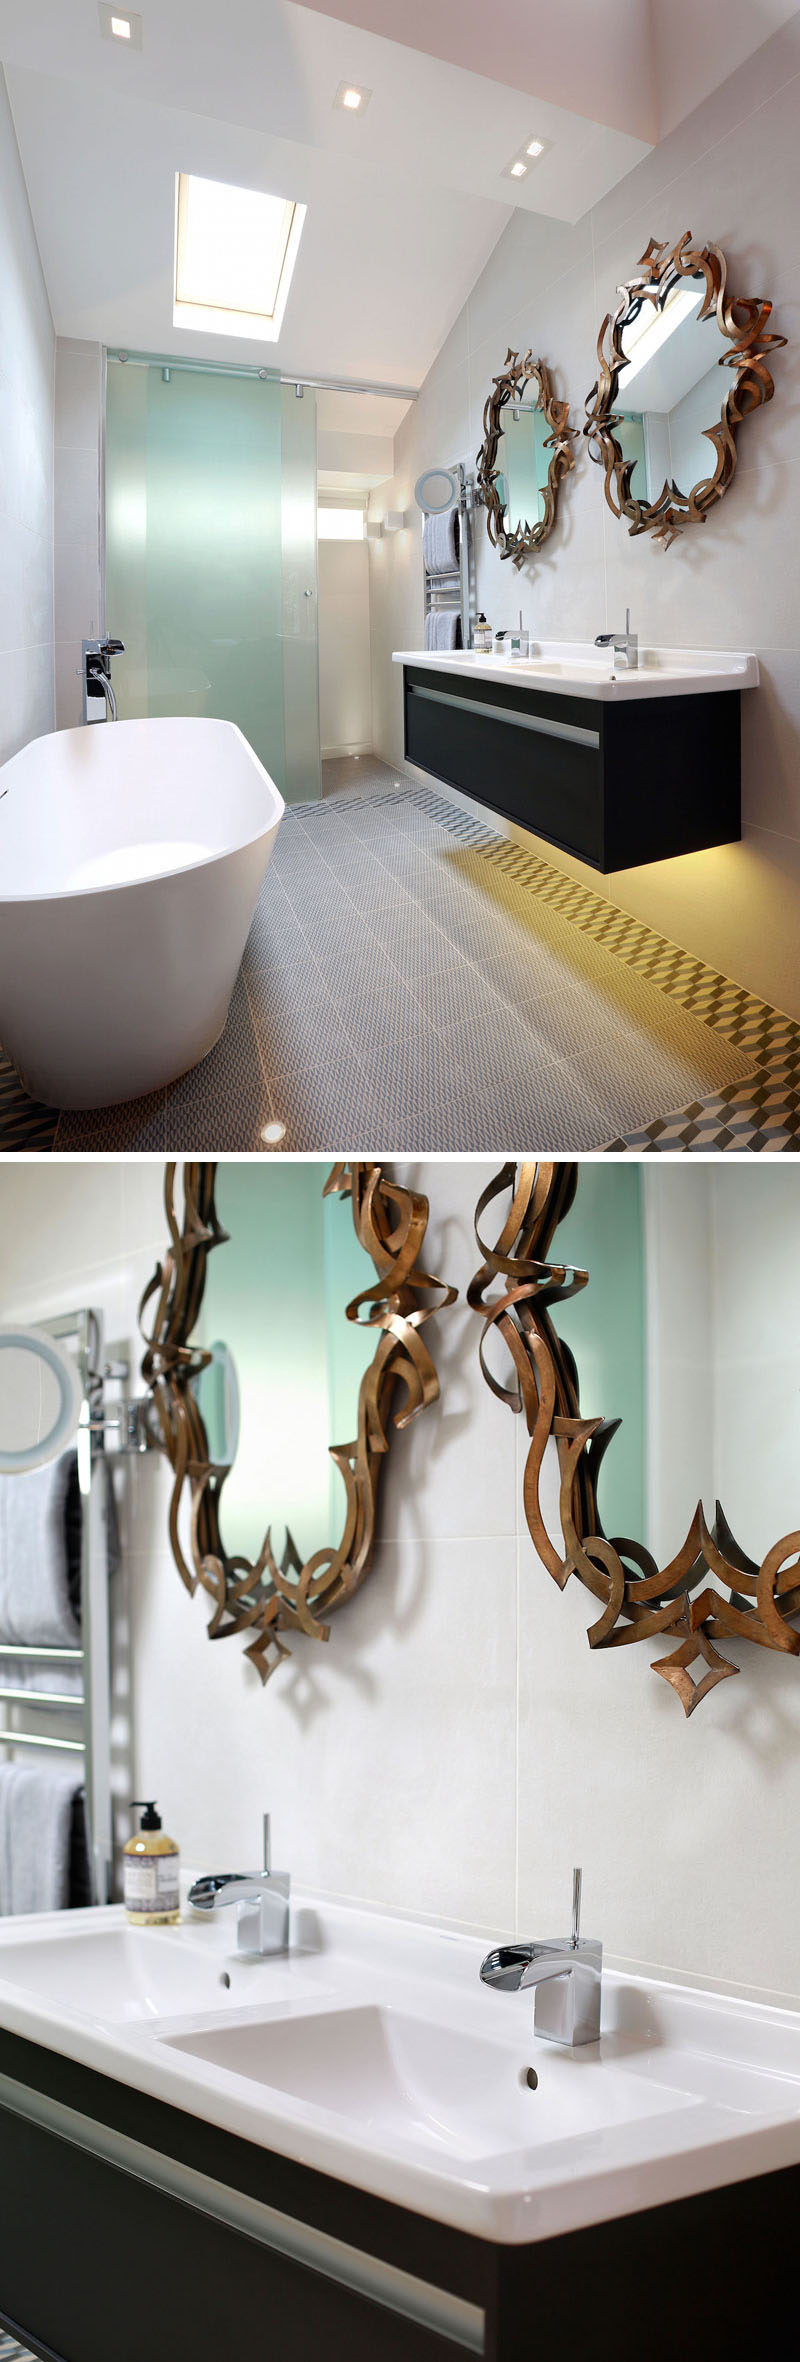 The bath in this bathroom was positioned facing the bedroom to allow views of the garden beyond, and an opaque glass sliding screen was installed between the toilet and bathroom. An LED strip under the vanity unit, additional wall lights and small in-floor up-lights around the bath completed the look, and bronze mirrors add an artistic touch to the bathroom.